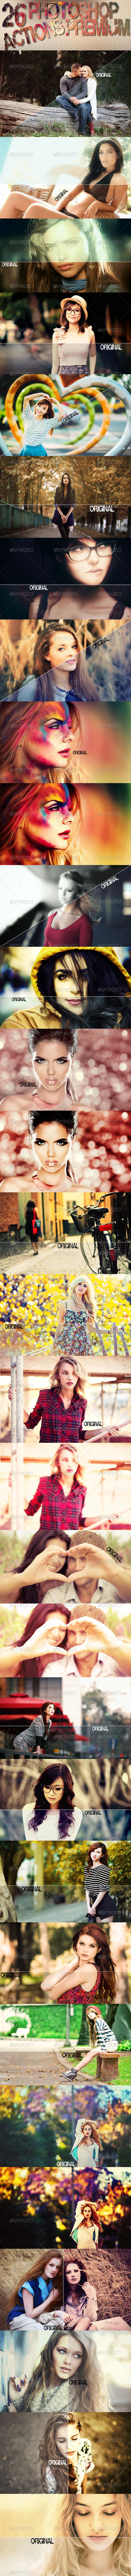 GraphicRiver 26 Photoshop Premium Actions 8645497